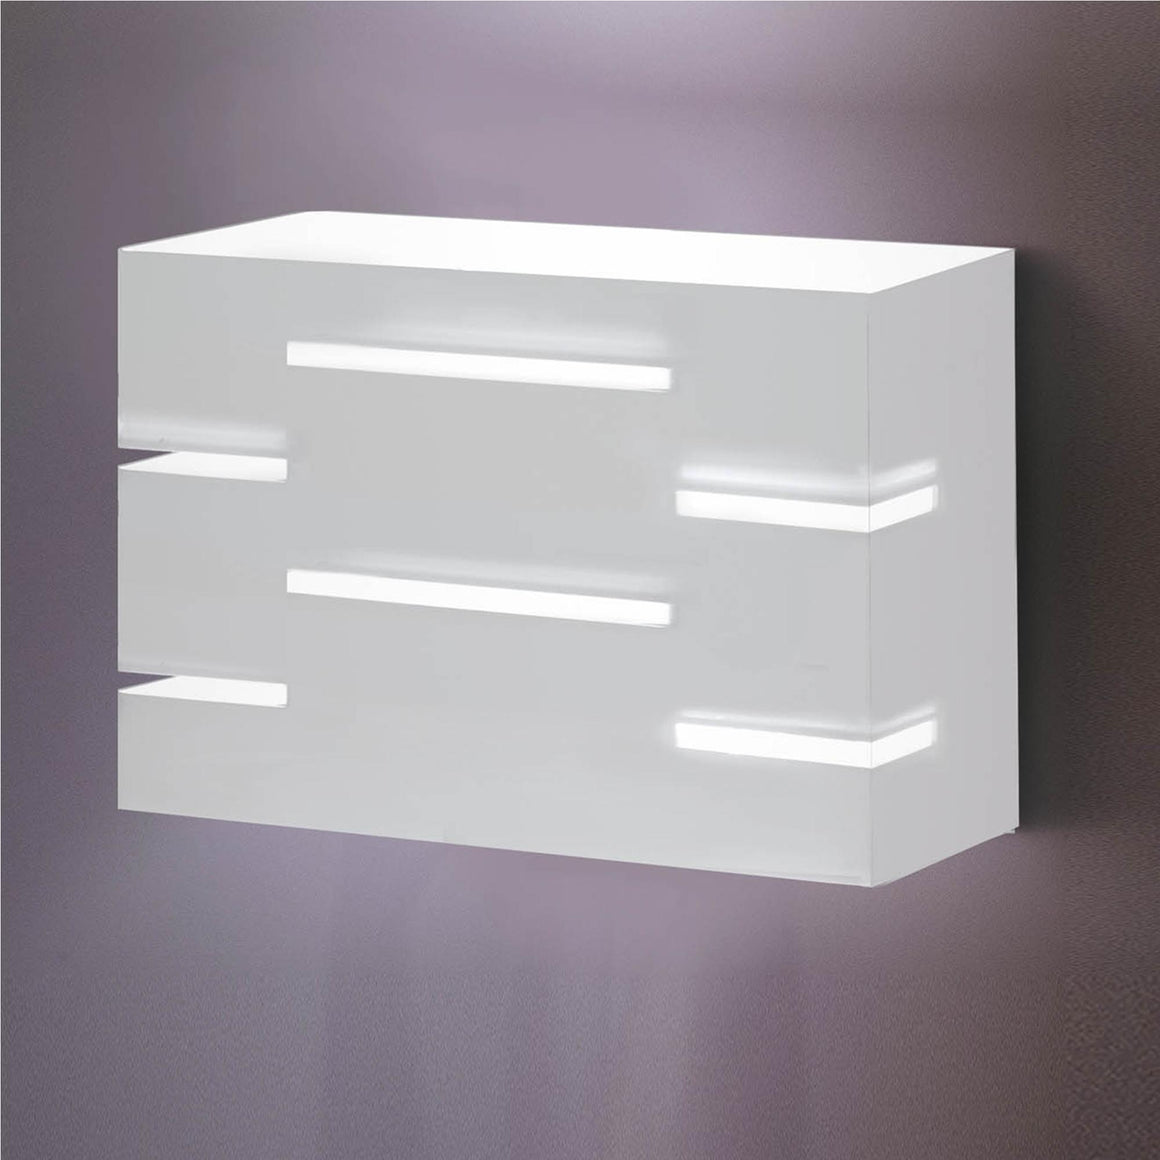 QUADRA WALL LIGHT